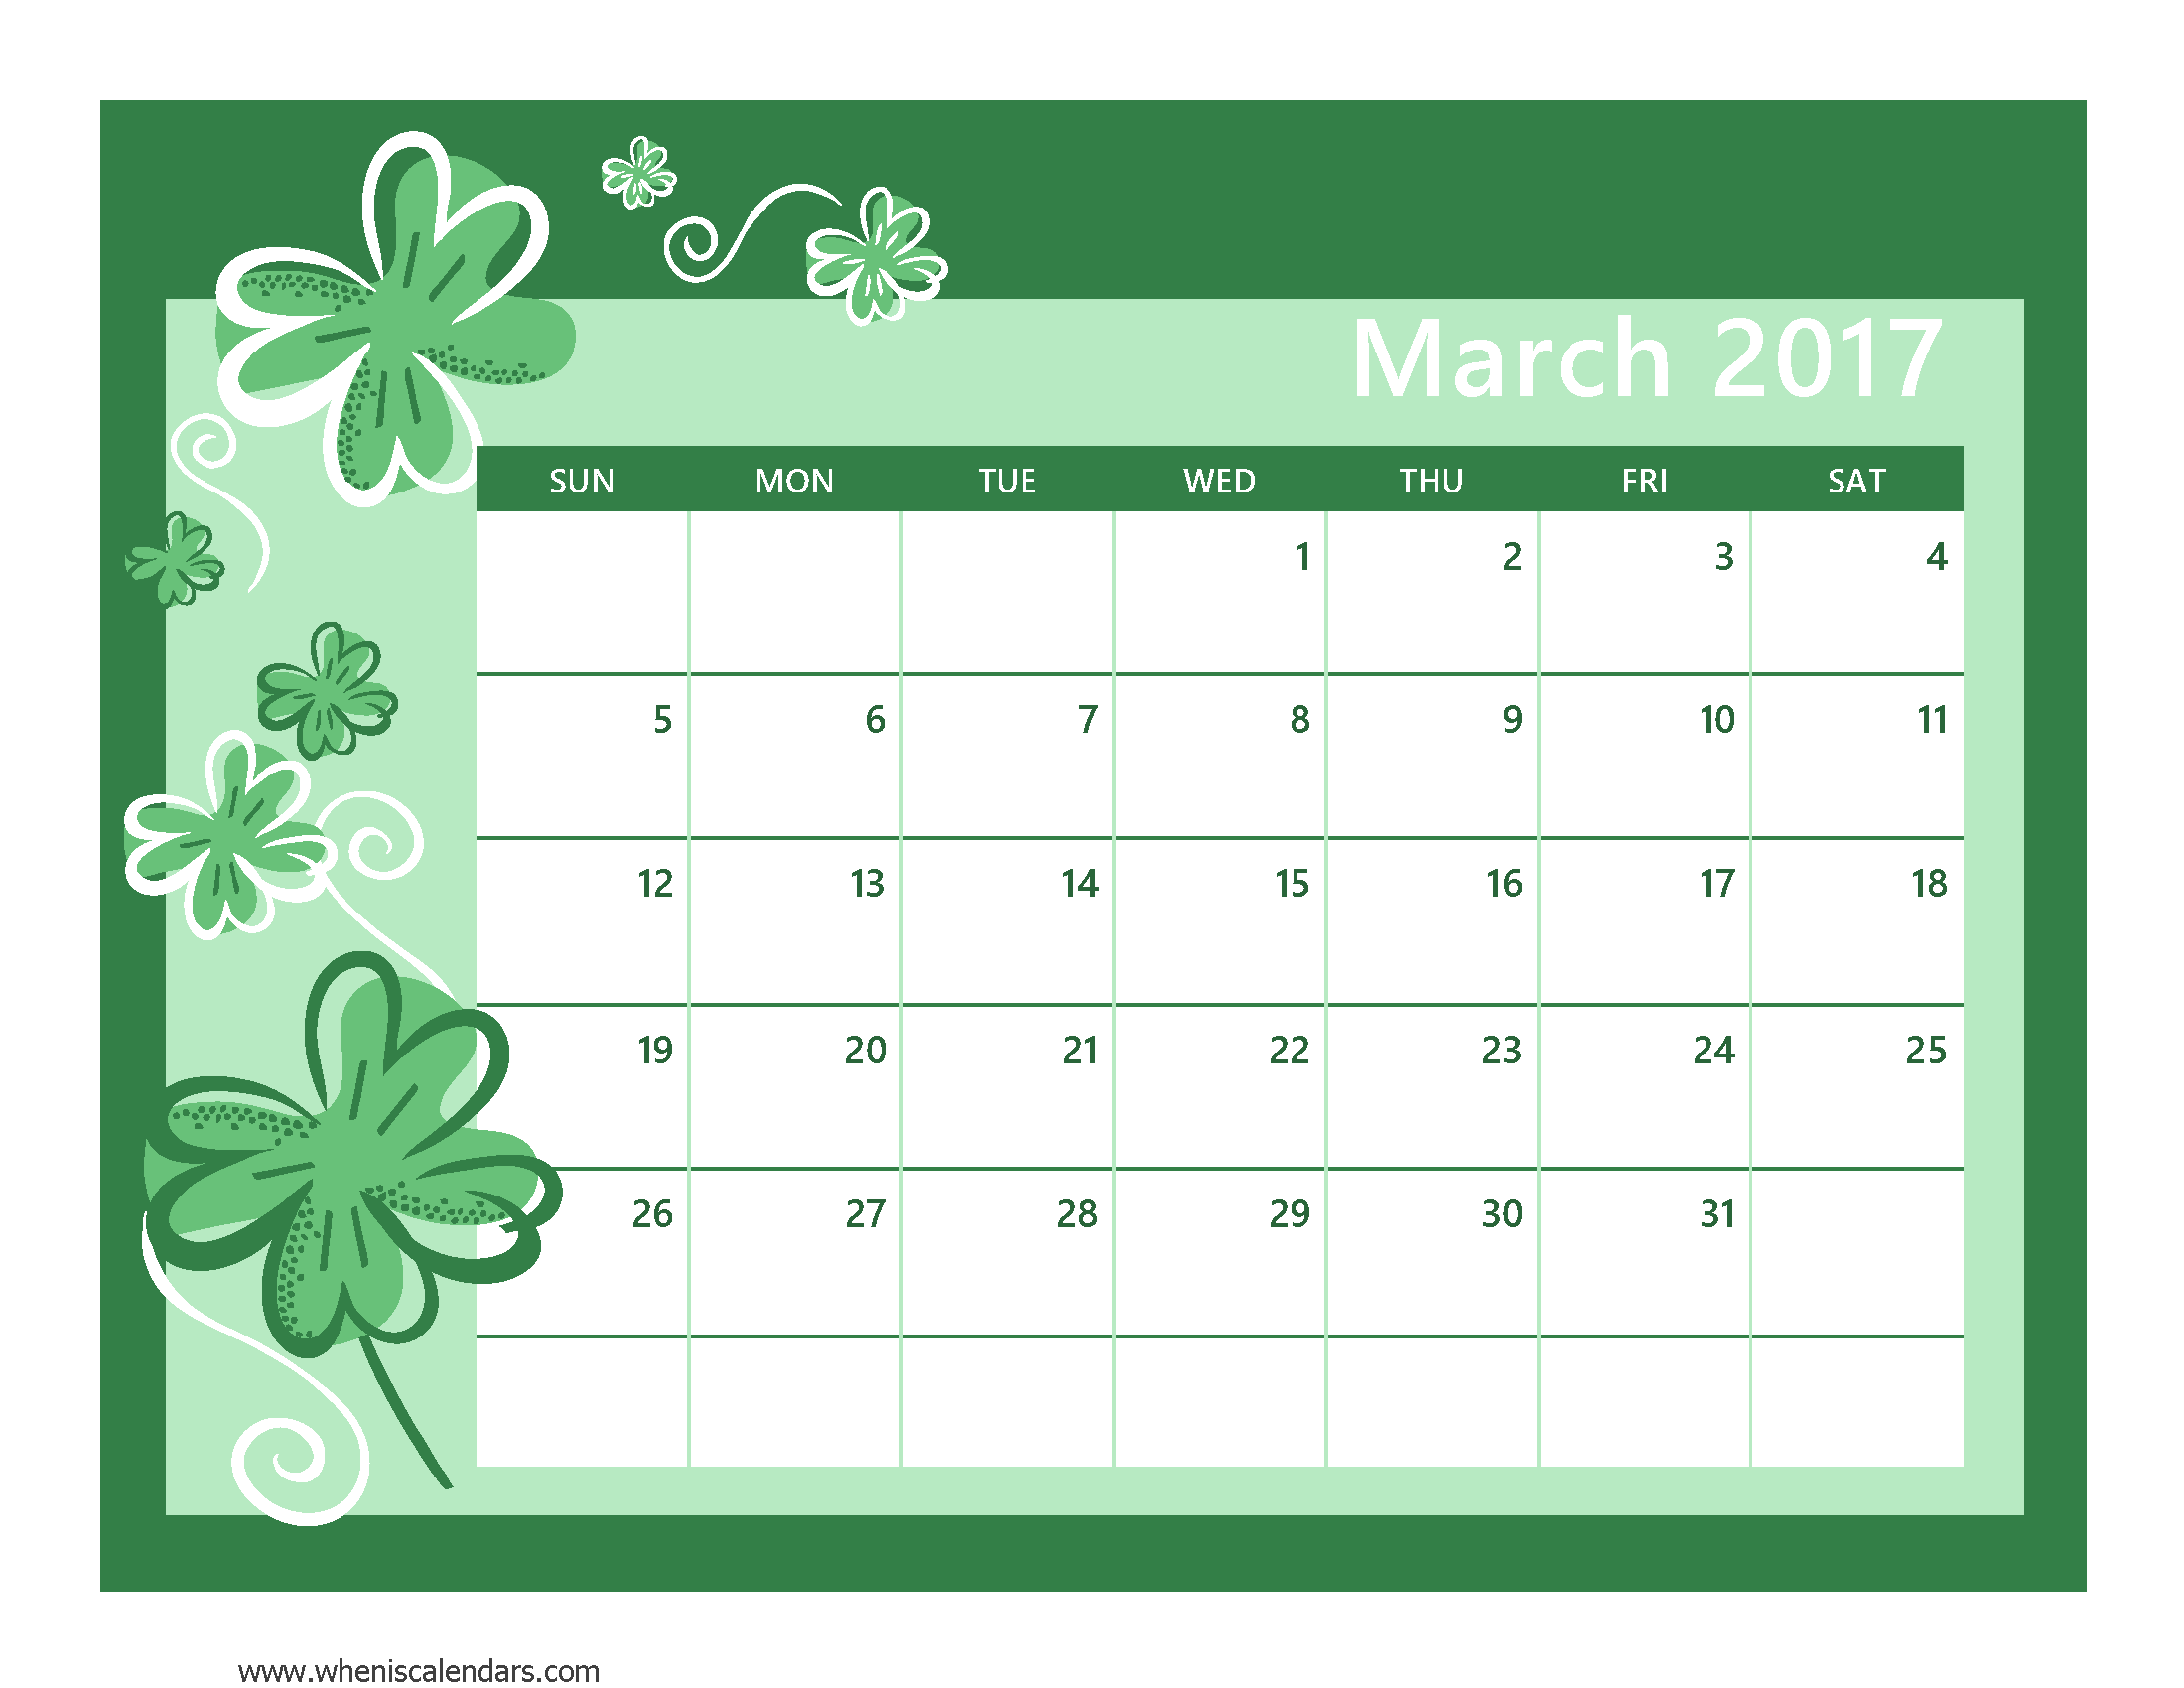 March 2017 Calendar Pdf | printable calendar templates